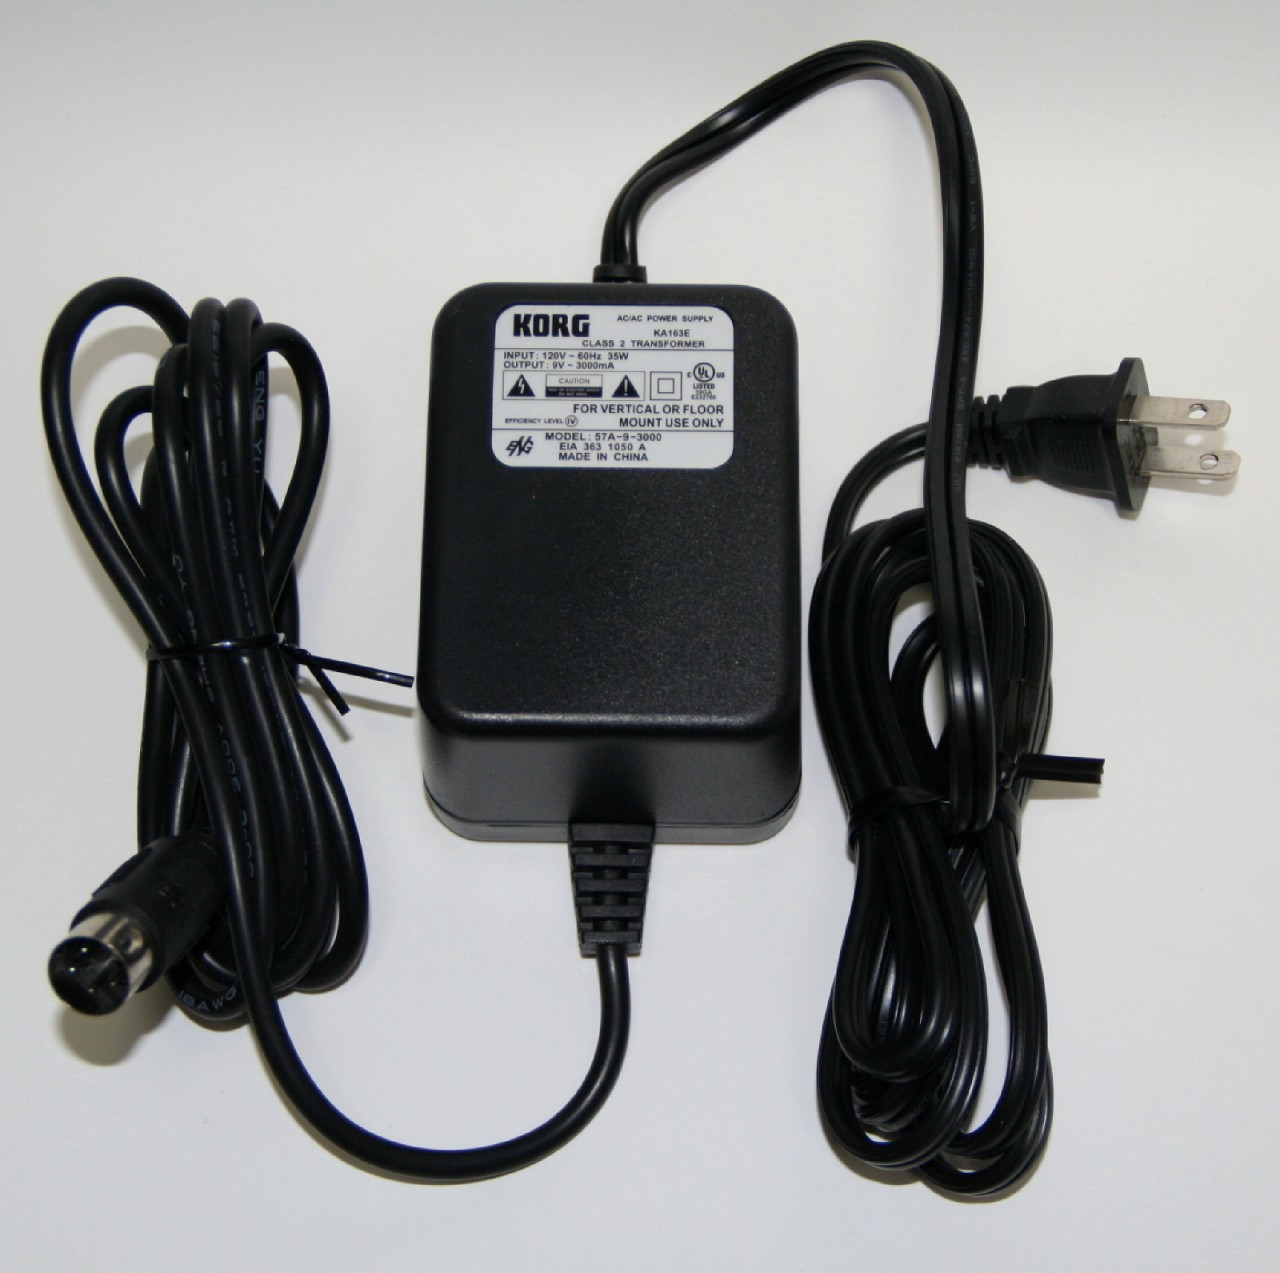 Korg Ka163 Ac Adapter Replacement Not Oem 9v 3500 Ma For Sp500 Power Supply 9vdc No Transformer Image 1